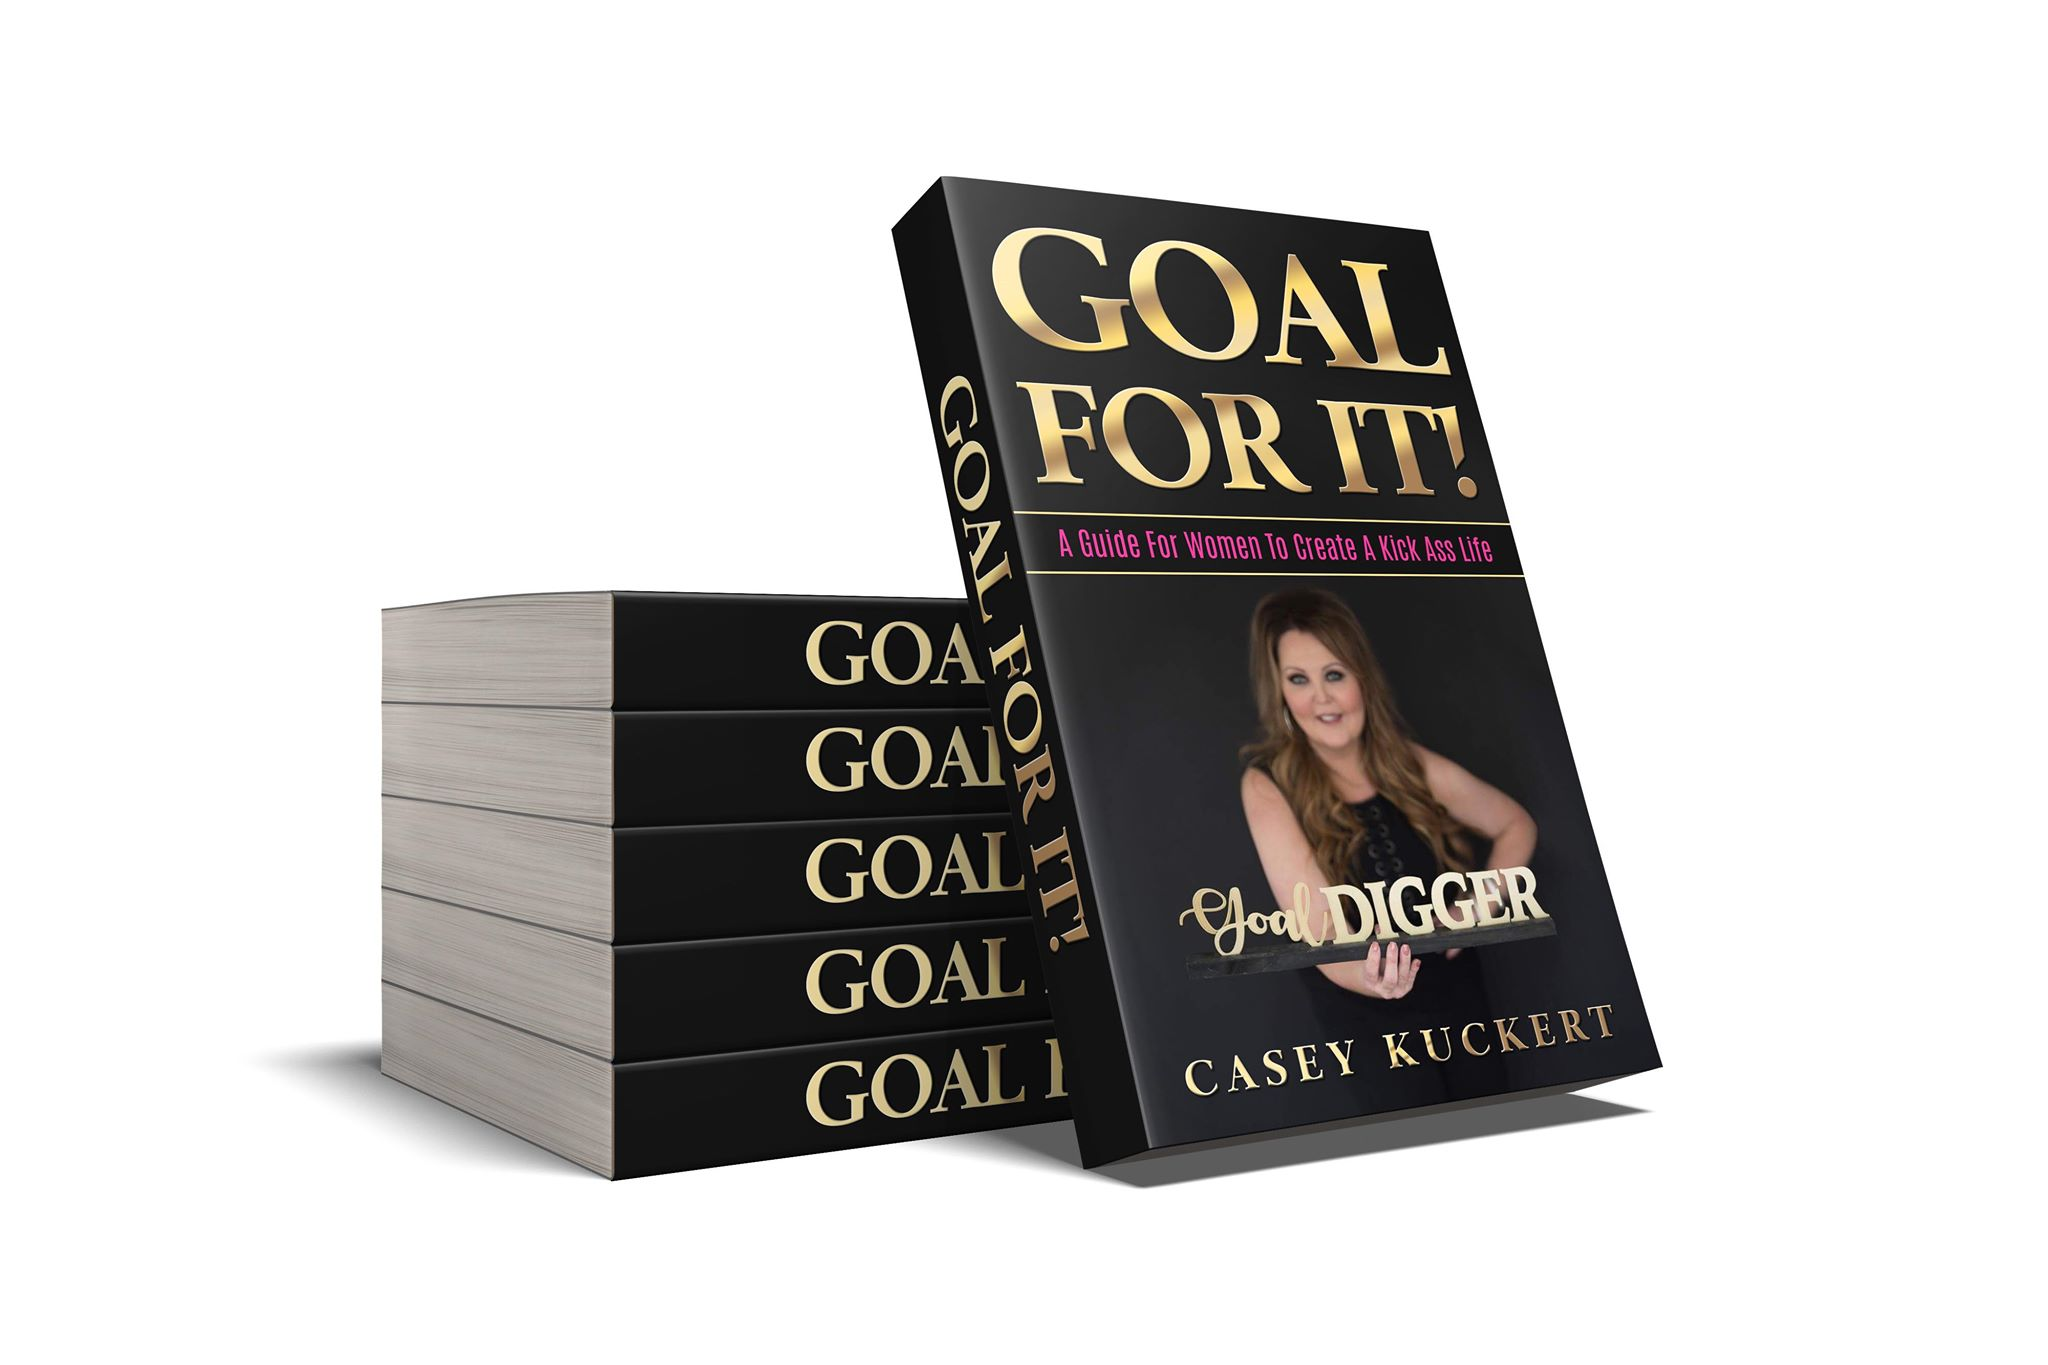 Goal For it Book